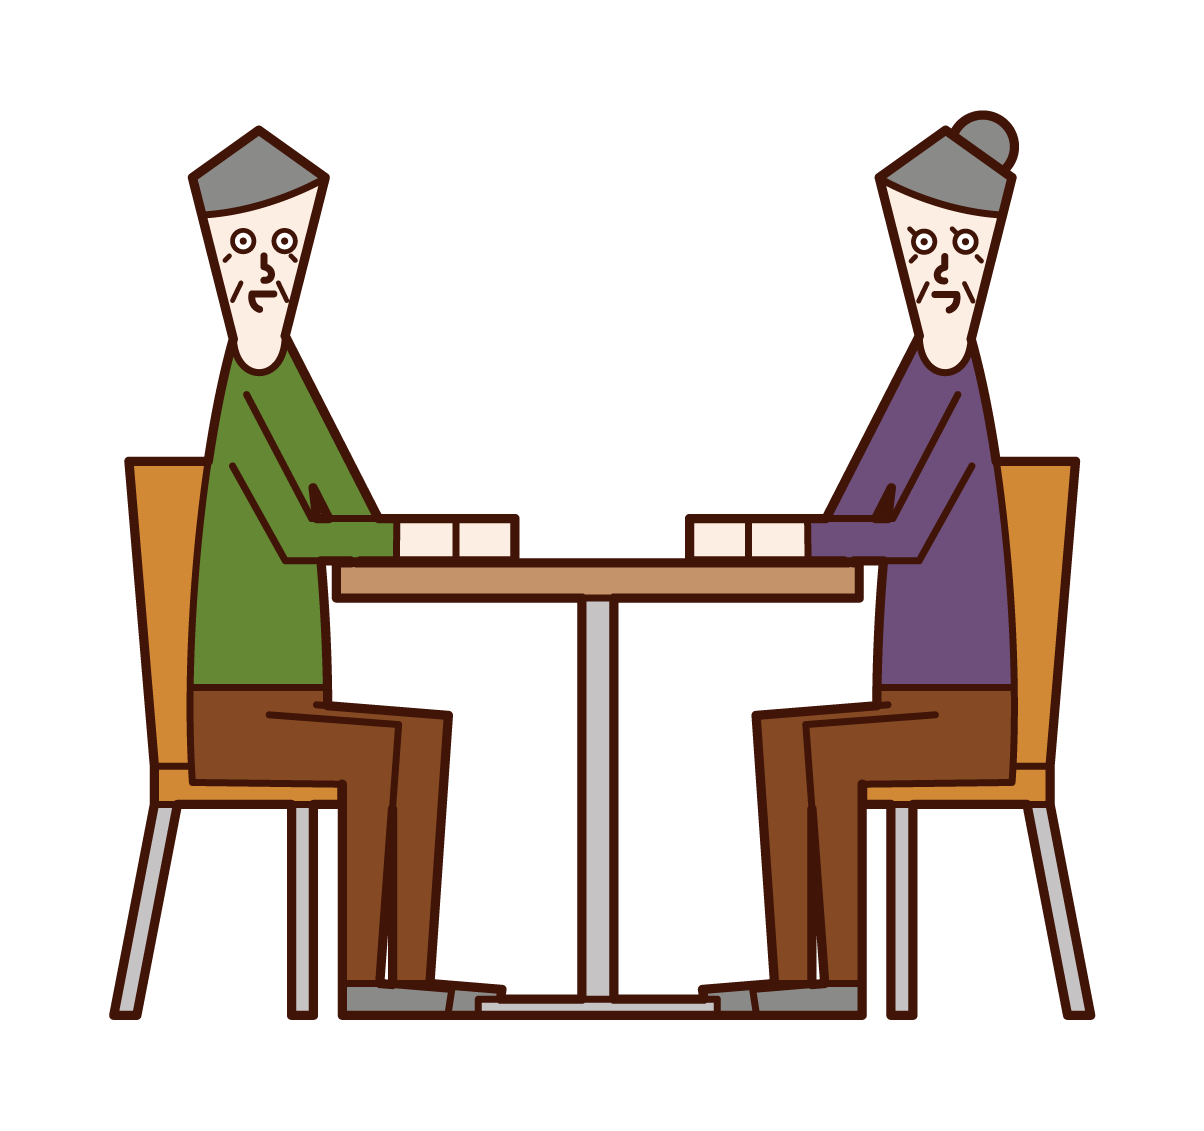 Illustration of an elderly couple sitting down and talking